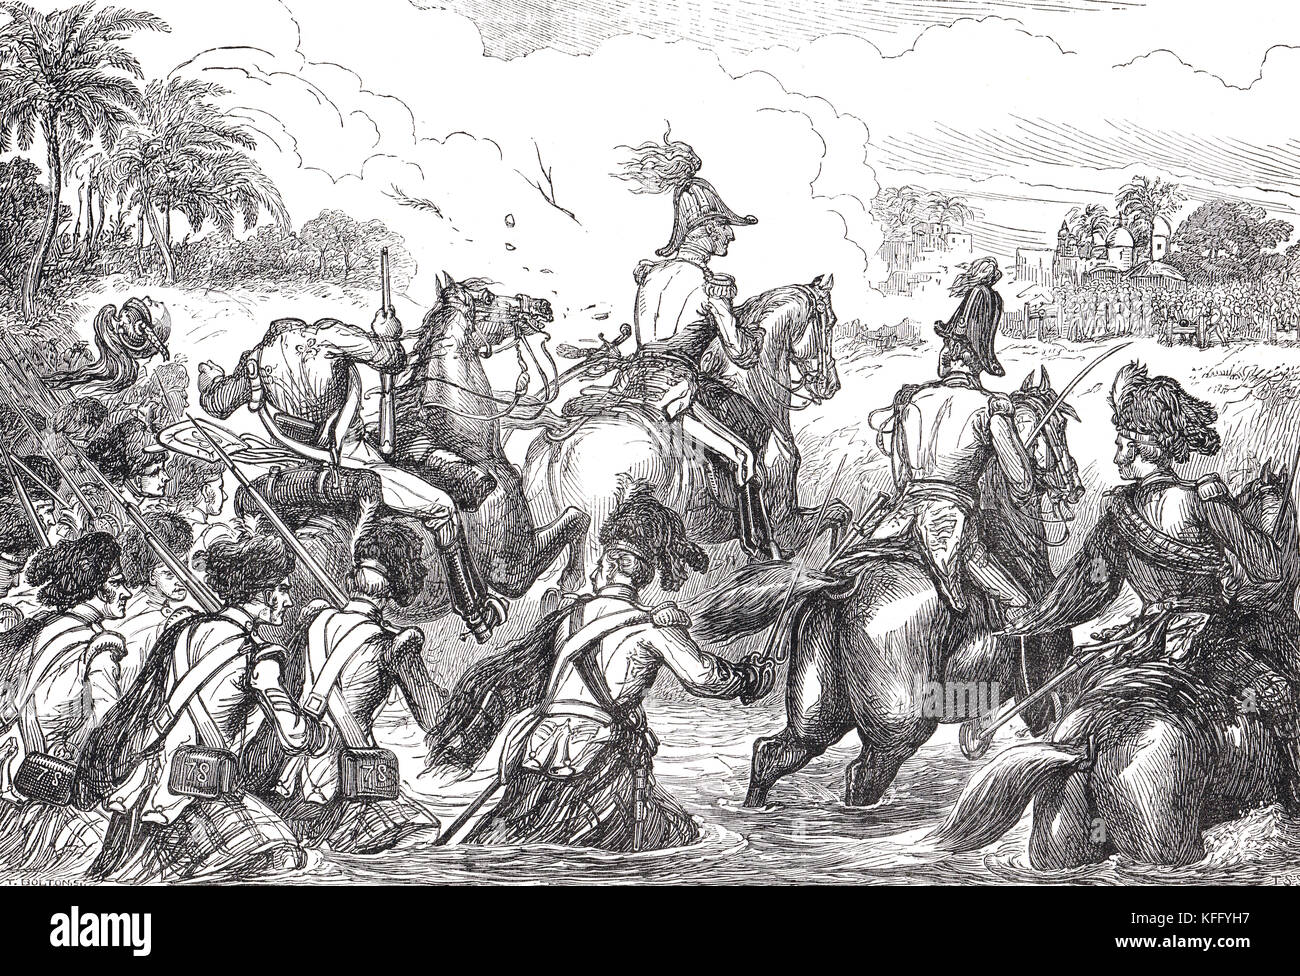 Duke of Wellington crossing the Kaitna River at the Battle of Assaye, 23 September 1803 - Stock Image